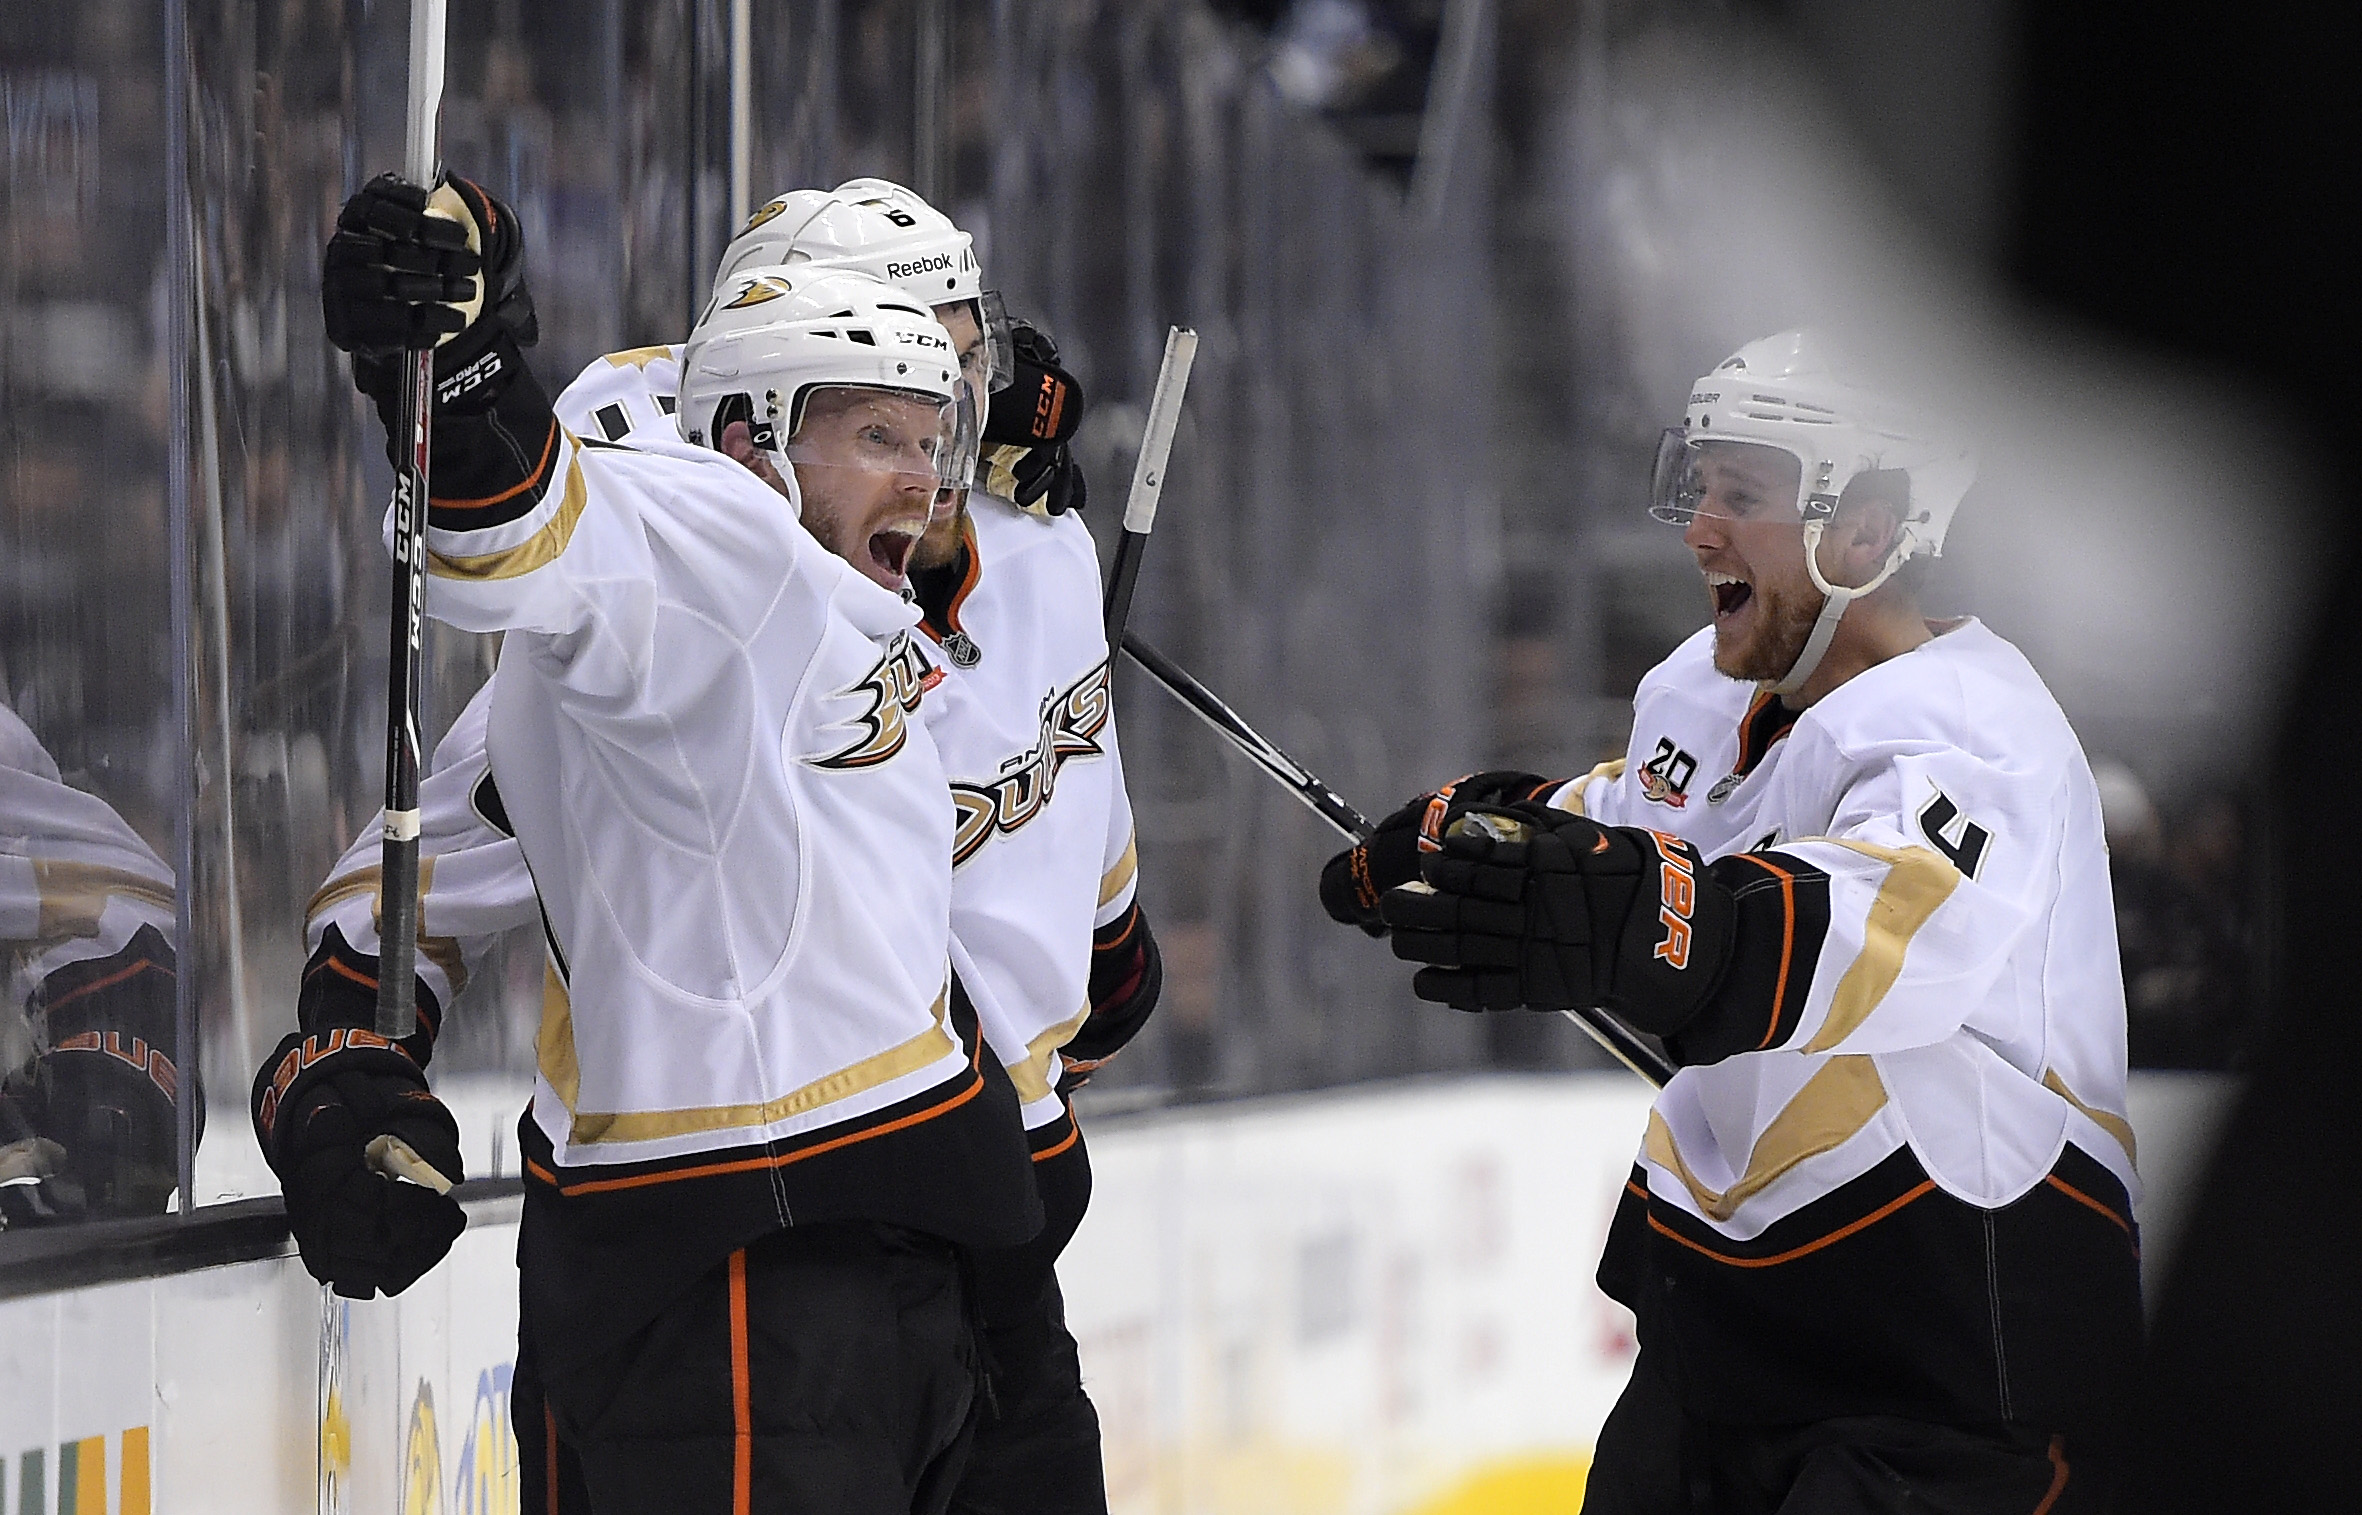 Anaheim Ducks Saku Koivu, left, of Finland, celebrates the goal of defenseman Ben Lovejoy, center, with defenseman Cam Fowler during the third period in Game 3 of an NHL hockey second-round Stanley Cup playoff series against the Los Angeles Kings, Thursday, May 8, 2014, in Los Angeles. The Ducks won 3-2